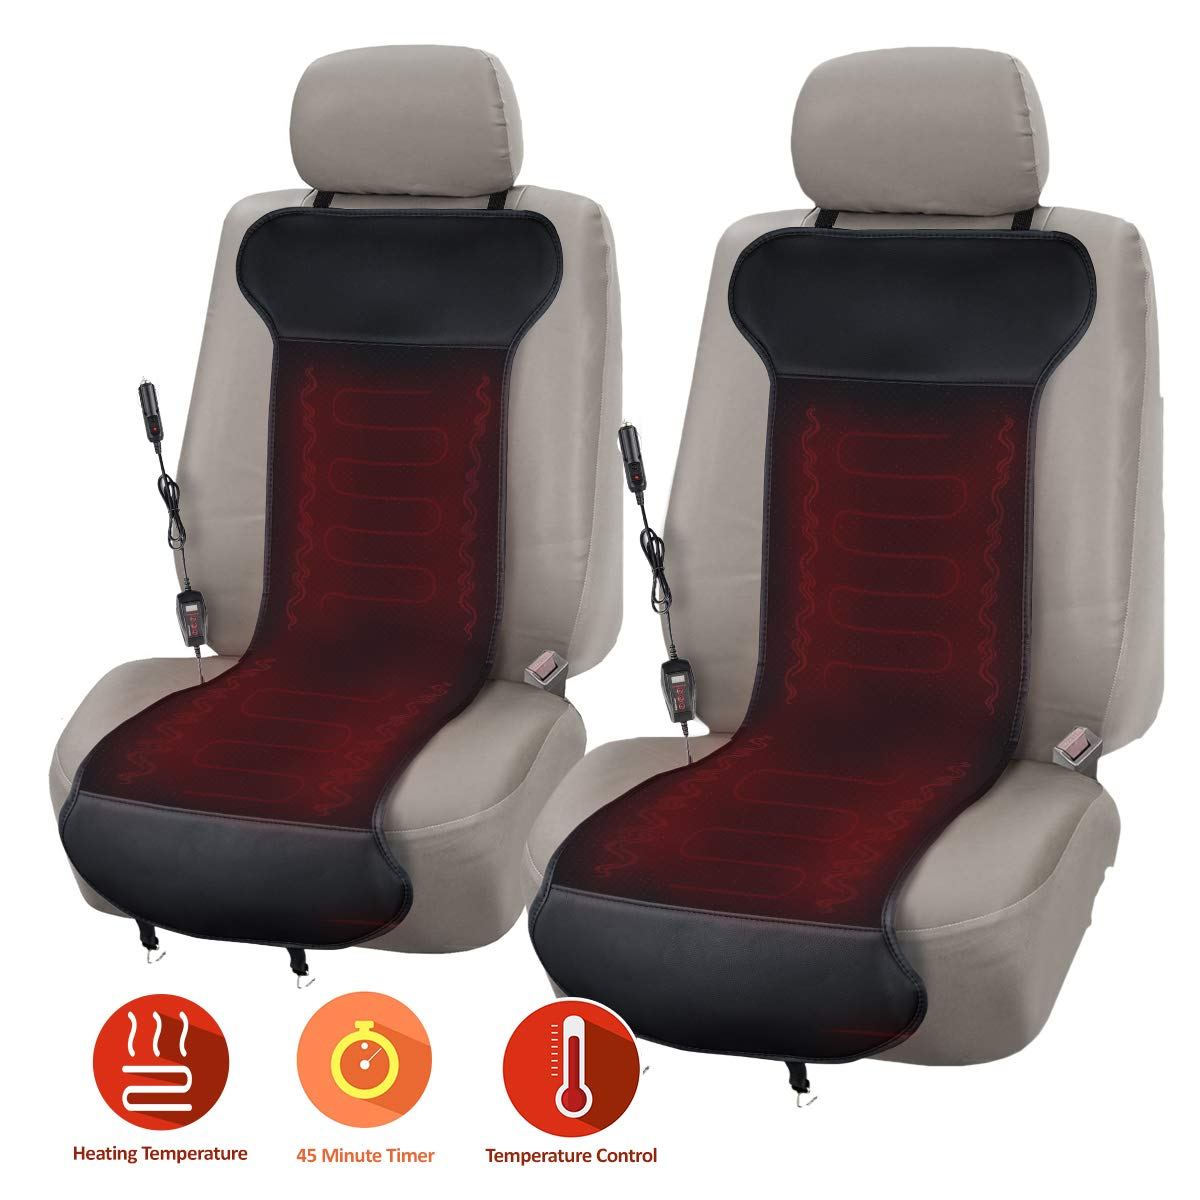 Zone Tech Car Heated Seat Cover Cushion with Temperature Control- 2 Pack Premium Quality Classic Black 12V Heated Comfortable Seat Cushion Perfect for Cold Weather and Winter Driving